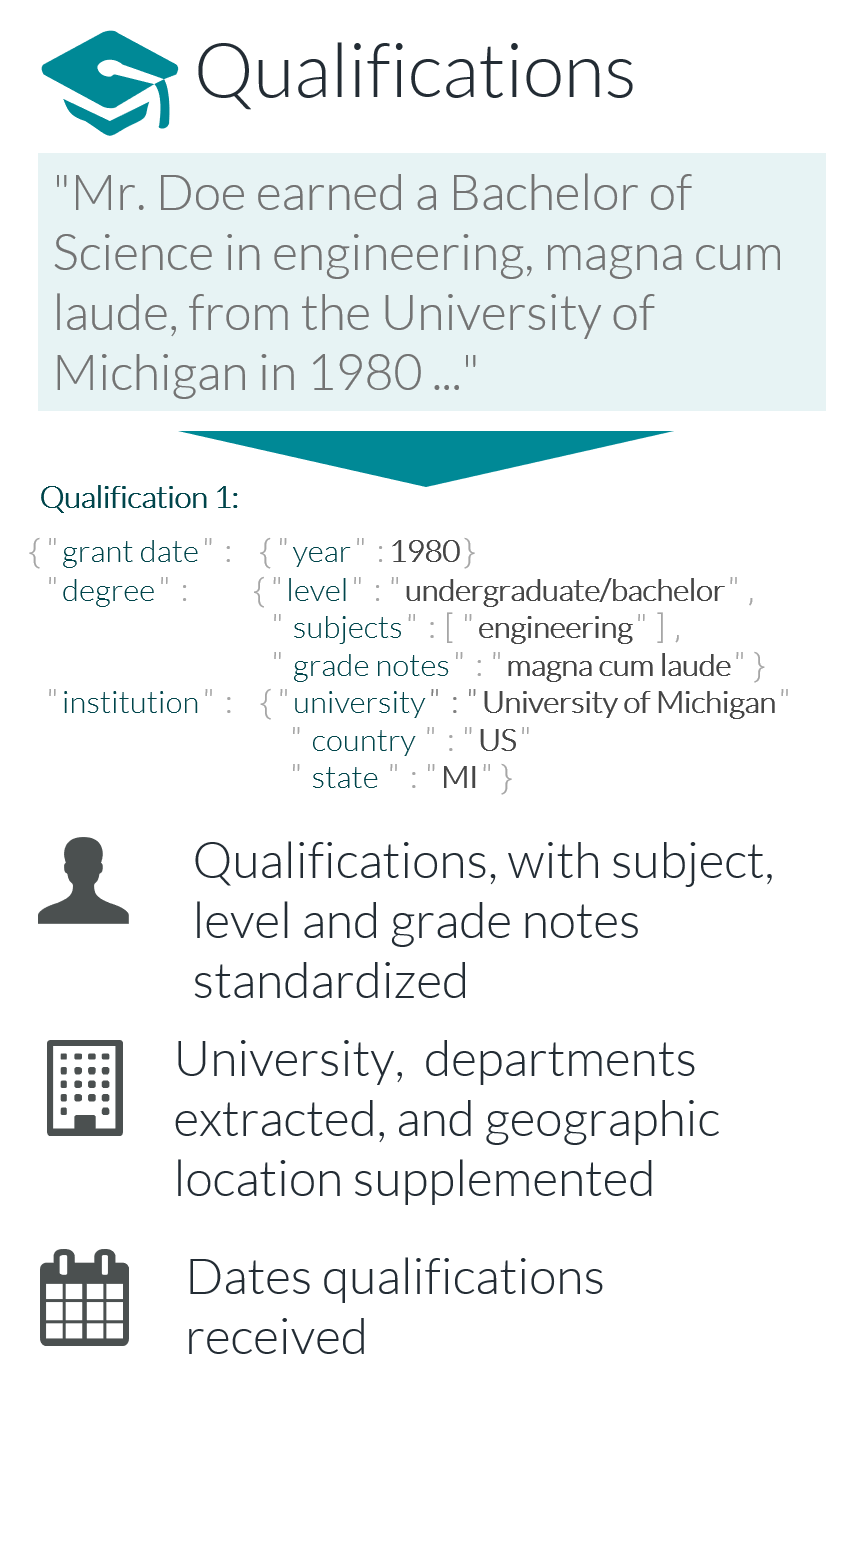 Qualifications, with subject, level and grade notes standardized / 